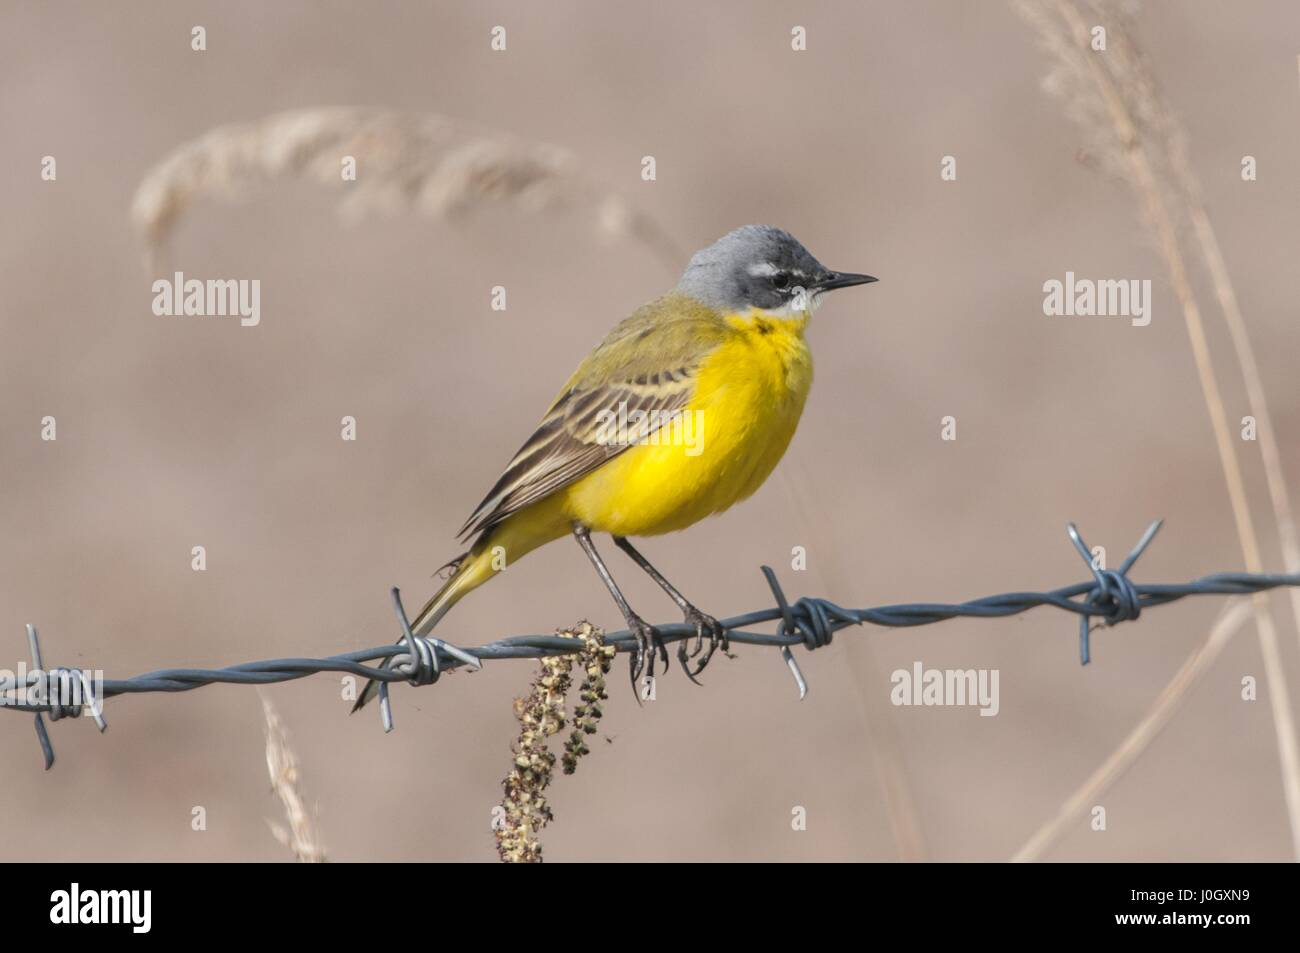 The western yellow wagtail (Motacilla flava). - Stock Image